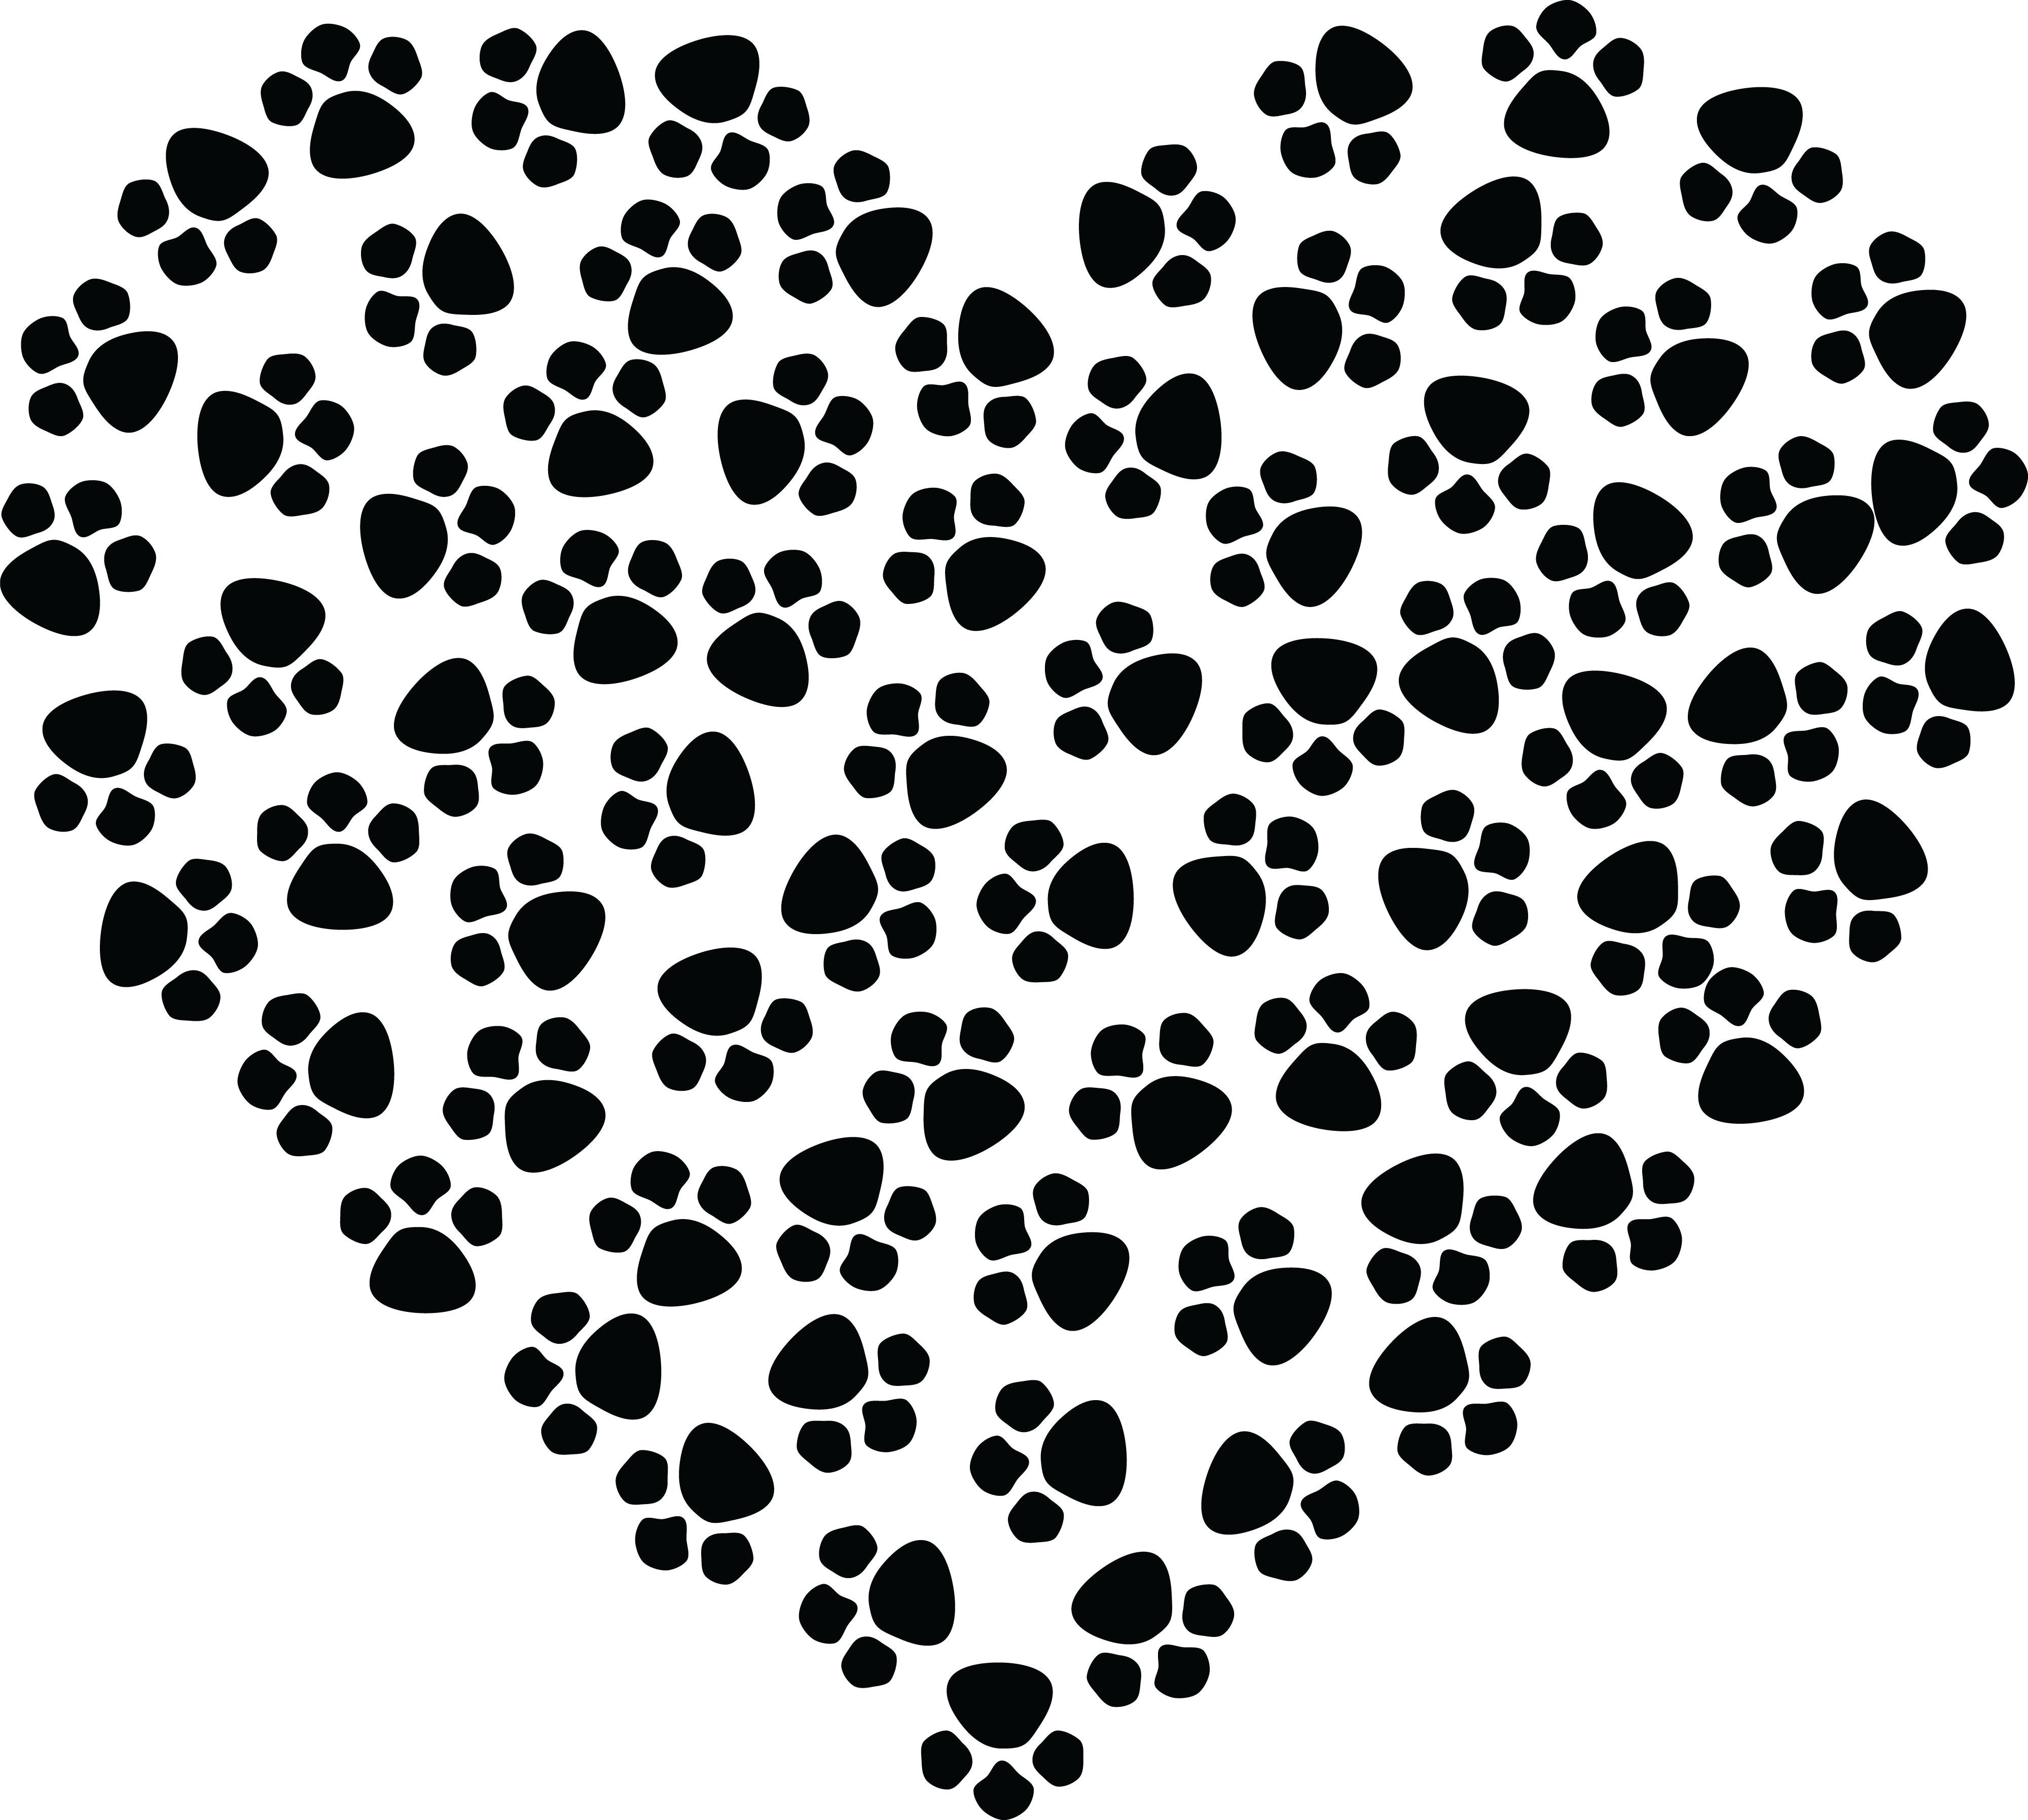 paw print heart clipart 1680 free clipart of a paw print heart.